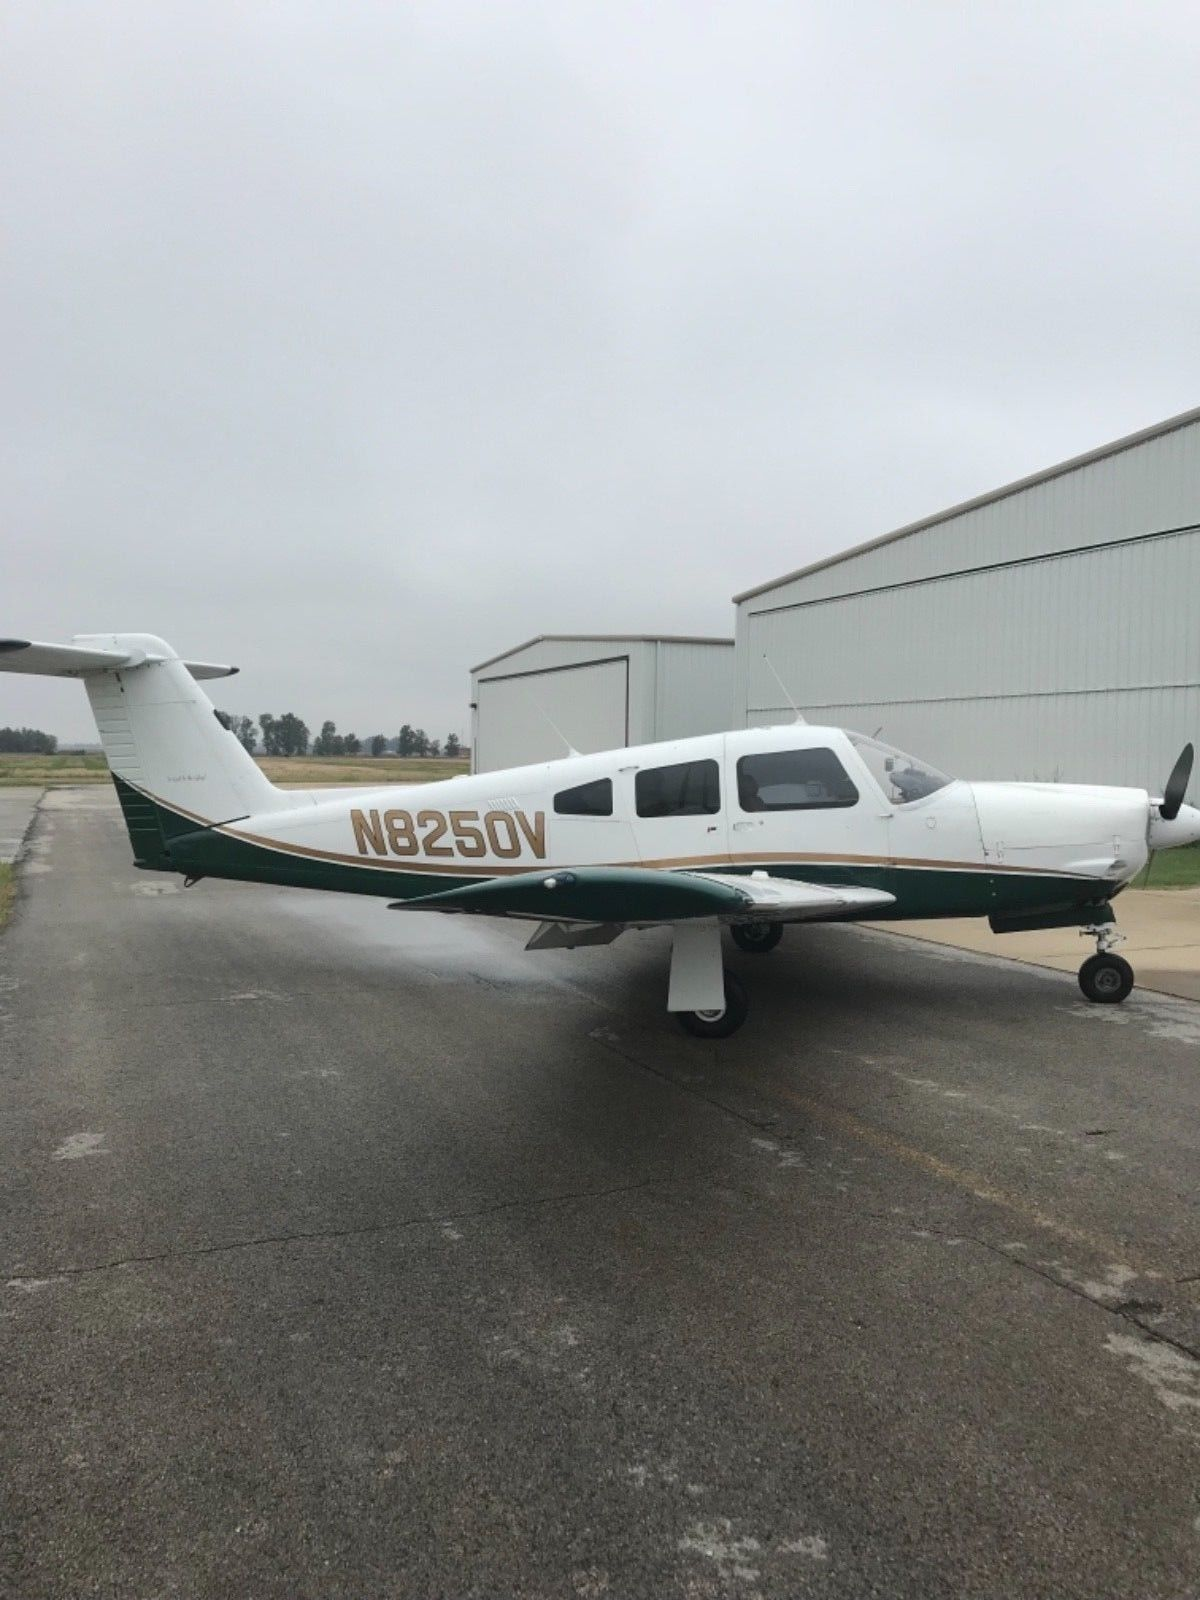 New plugs and wires 1980 Piper Arrow IV aircraft for sale